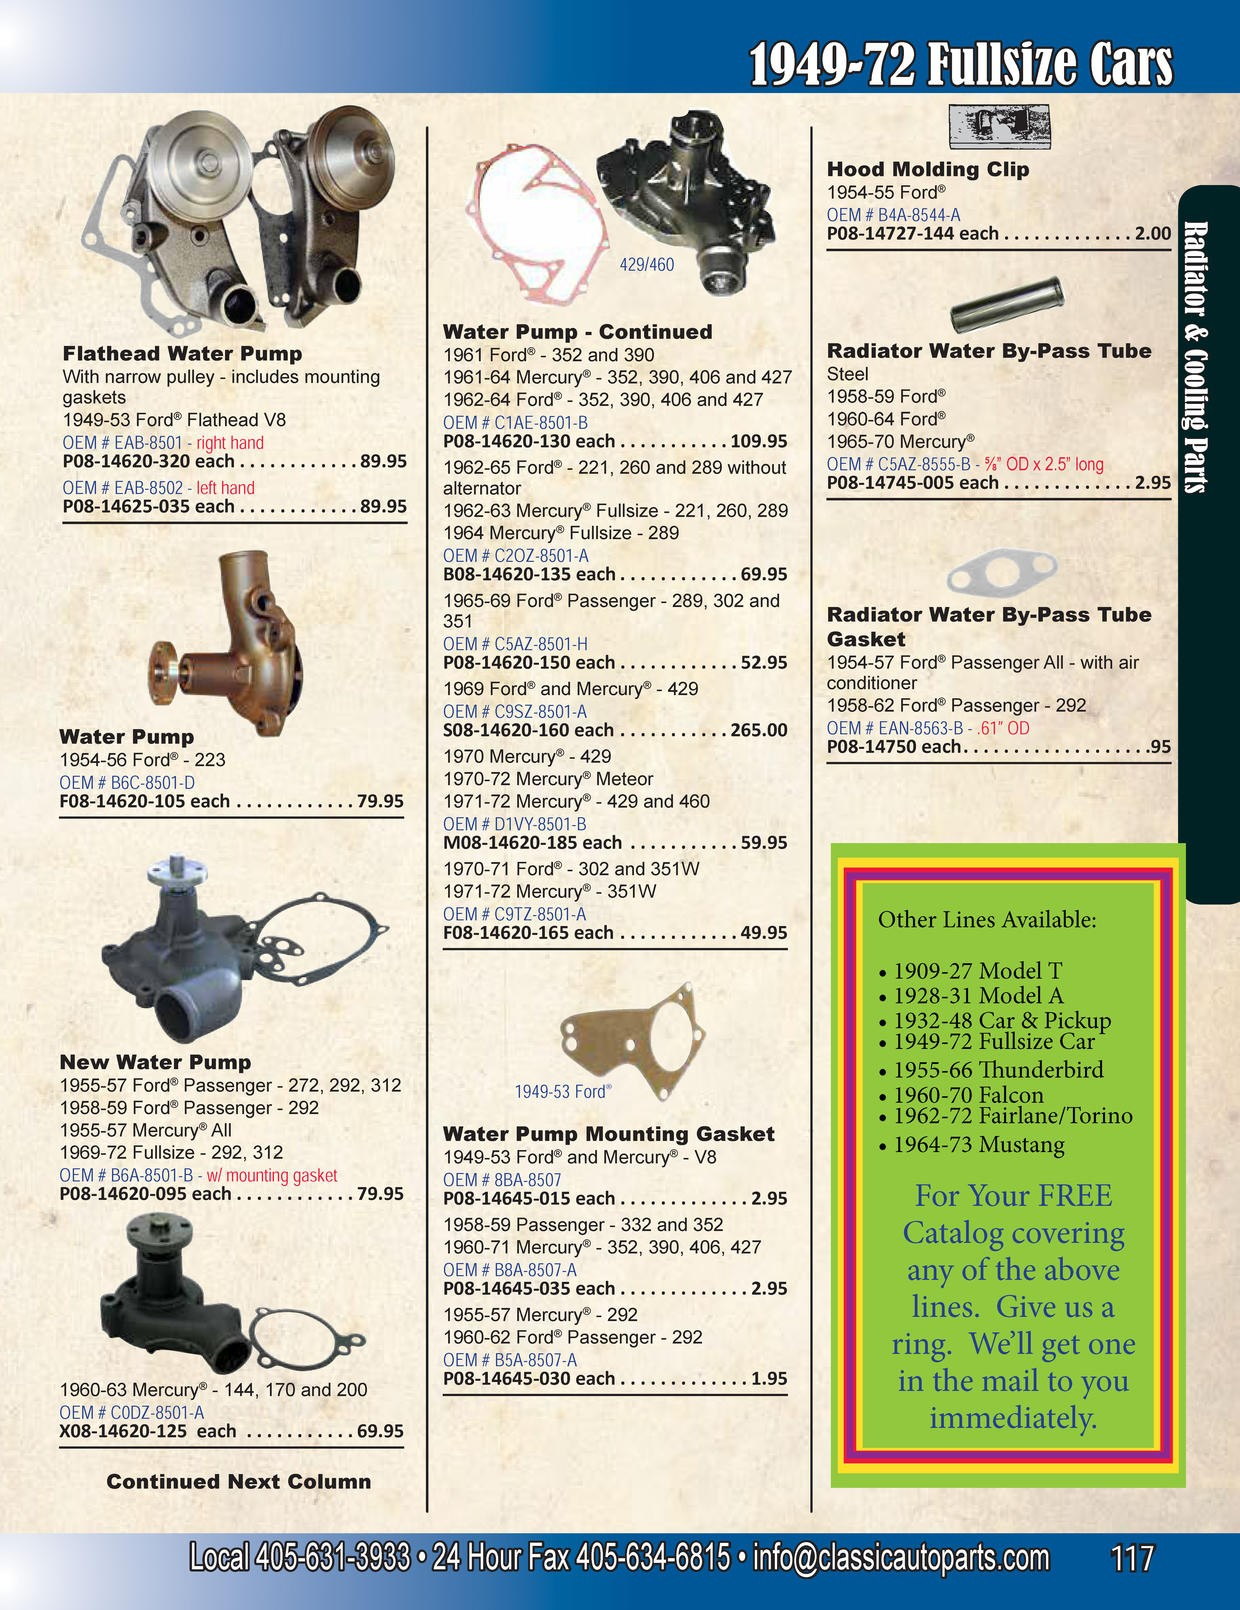 hight resolution of ford oem parts diagram fullsize ford mercury page 117 radiator cooling parts of ford oem